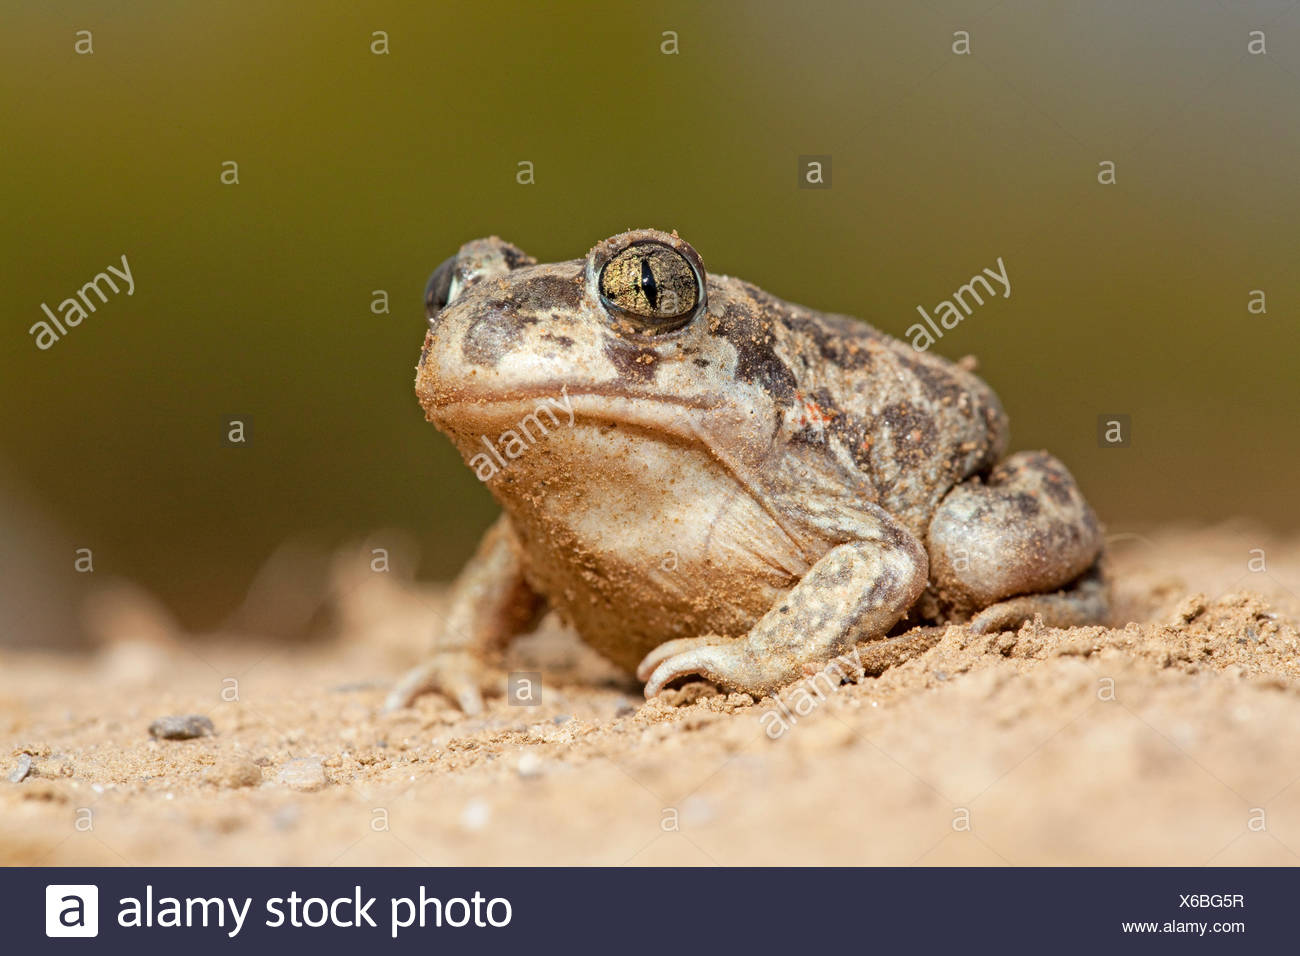 Foto van een juveniele Syrische knofloopad op zand met een tegen een zachte groene achtergrond; photo of a juvenile Eastern spadefoot toad on sand against a soft green background; - Stock Image